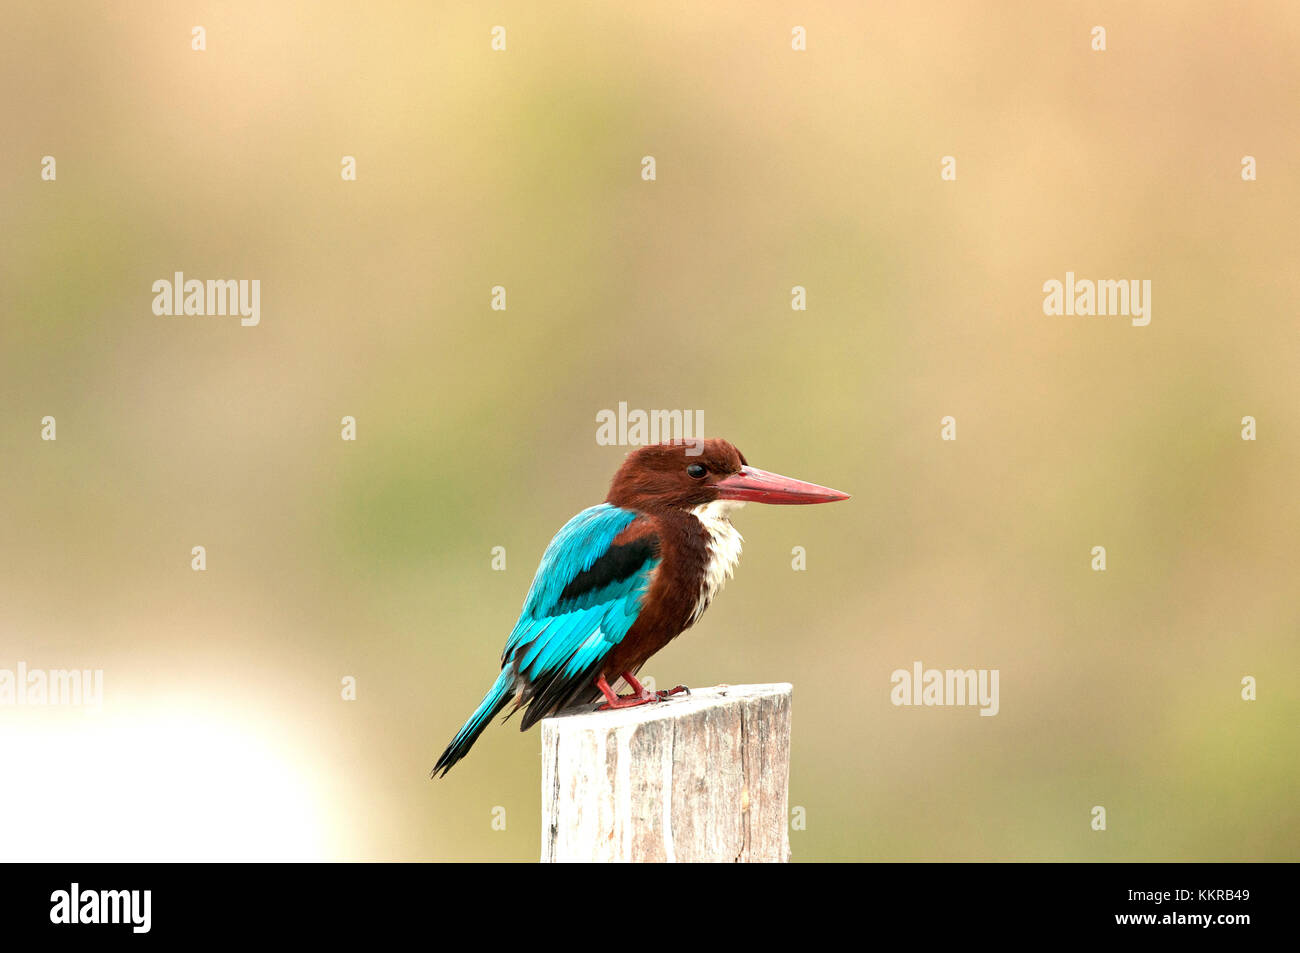 White-throated kingfisher (Halcyon smyrnensis), Thailand - Stock Image